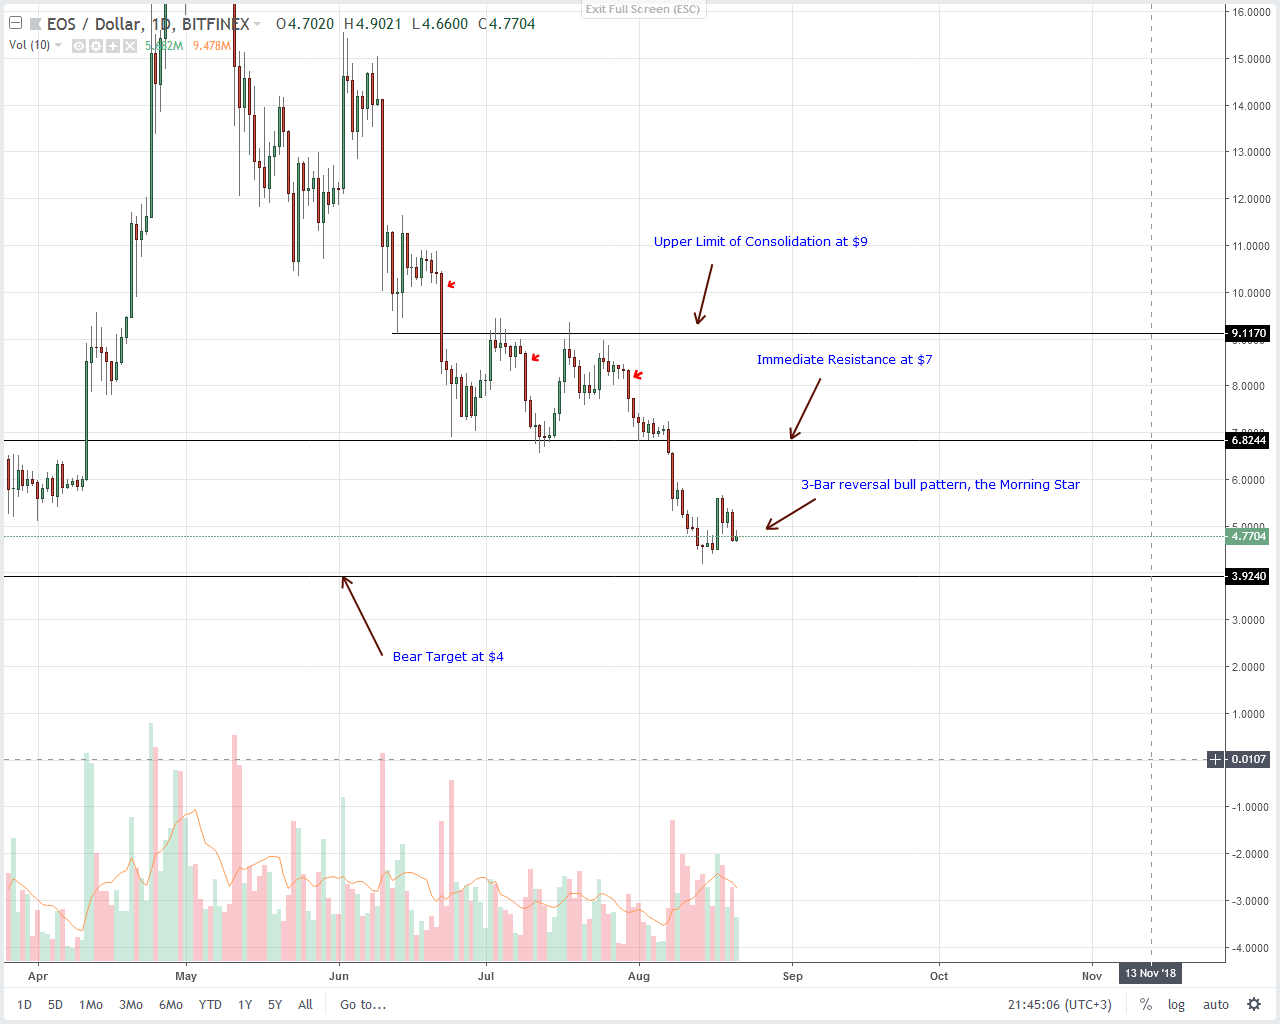 EOS Technical Analysis